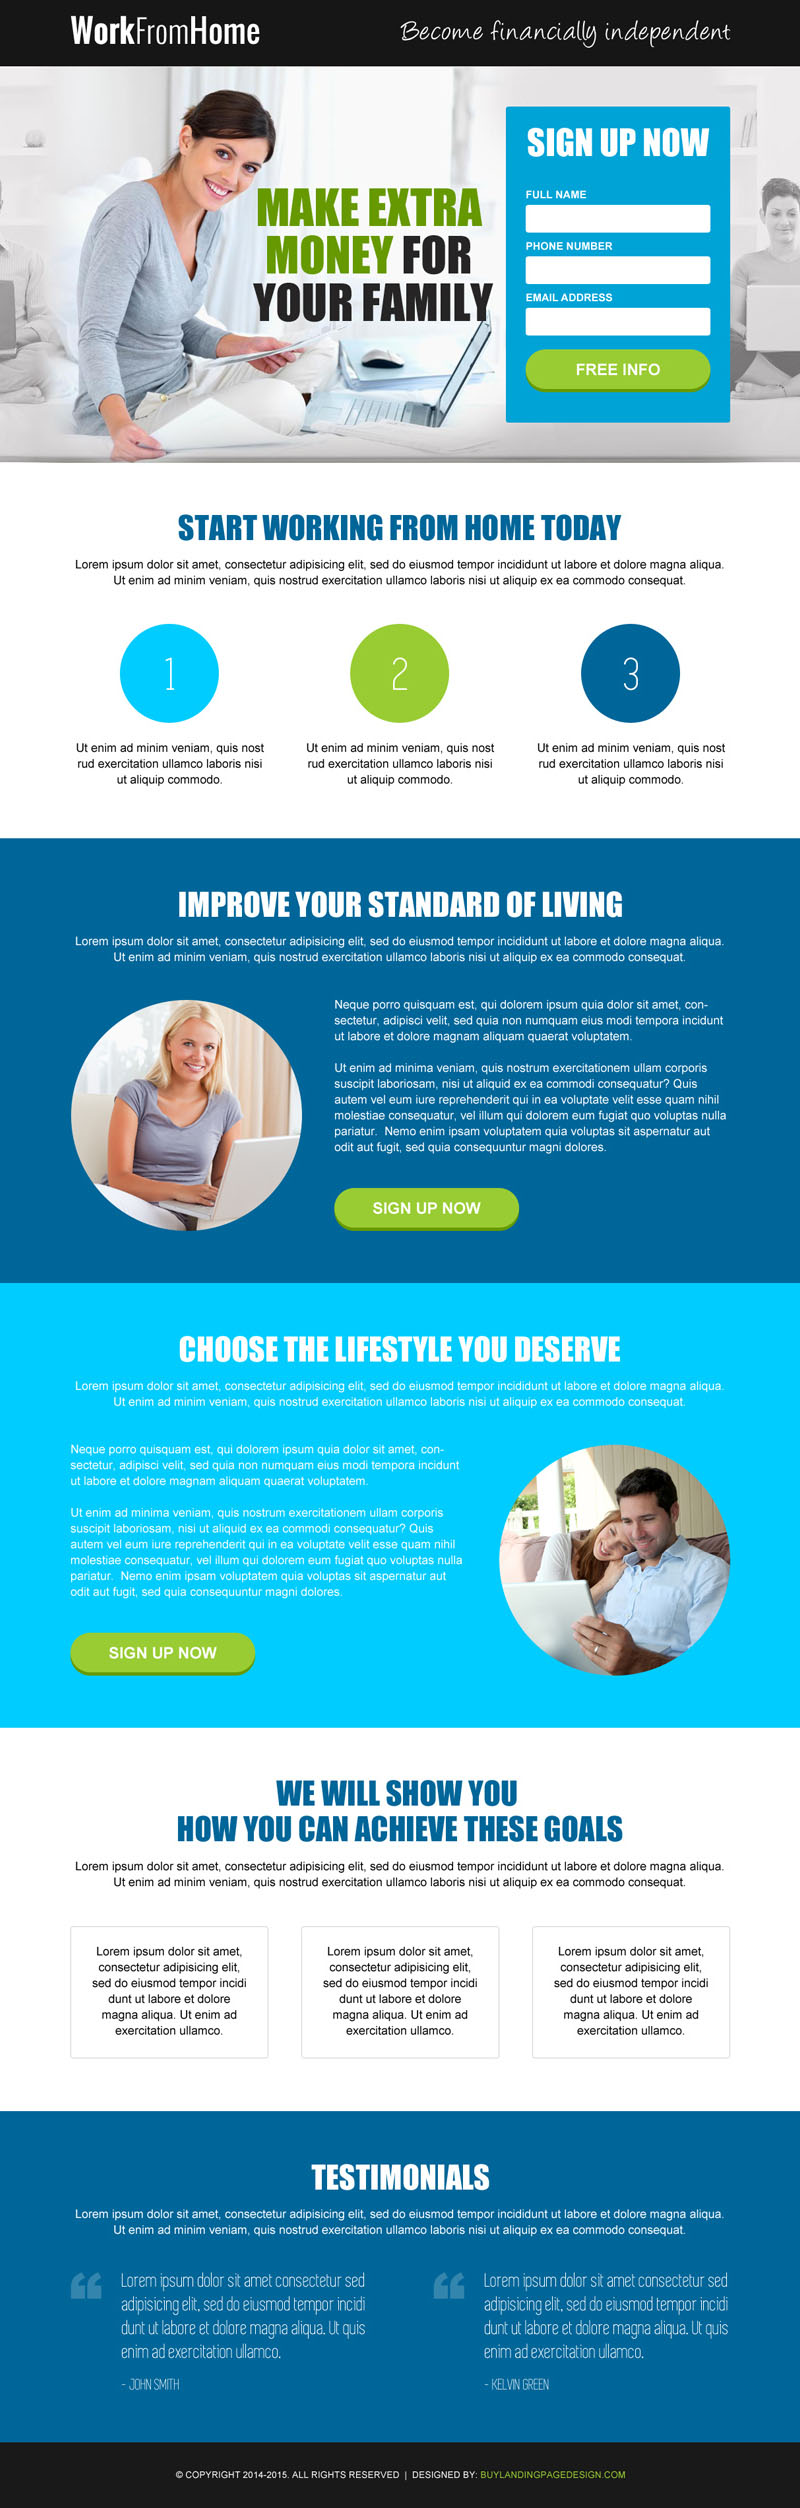 make-extra-money-by-working-from-home-responsive-lead-generation-landing-page-design-008